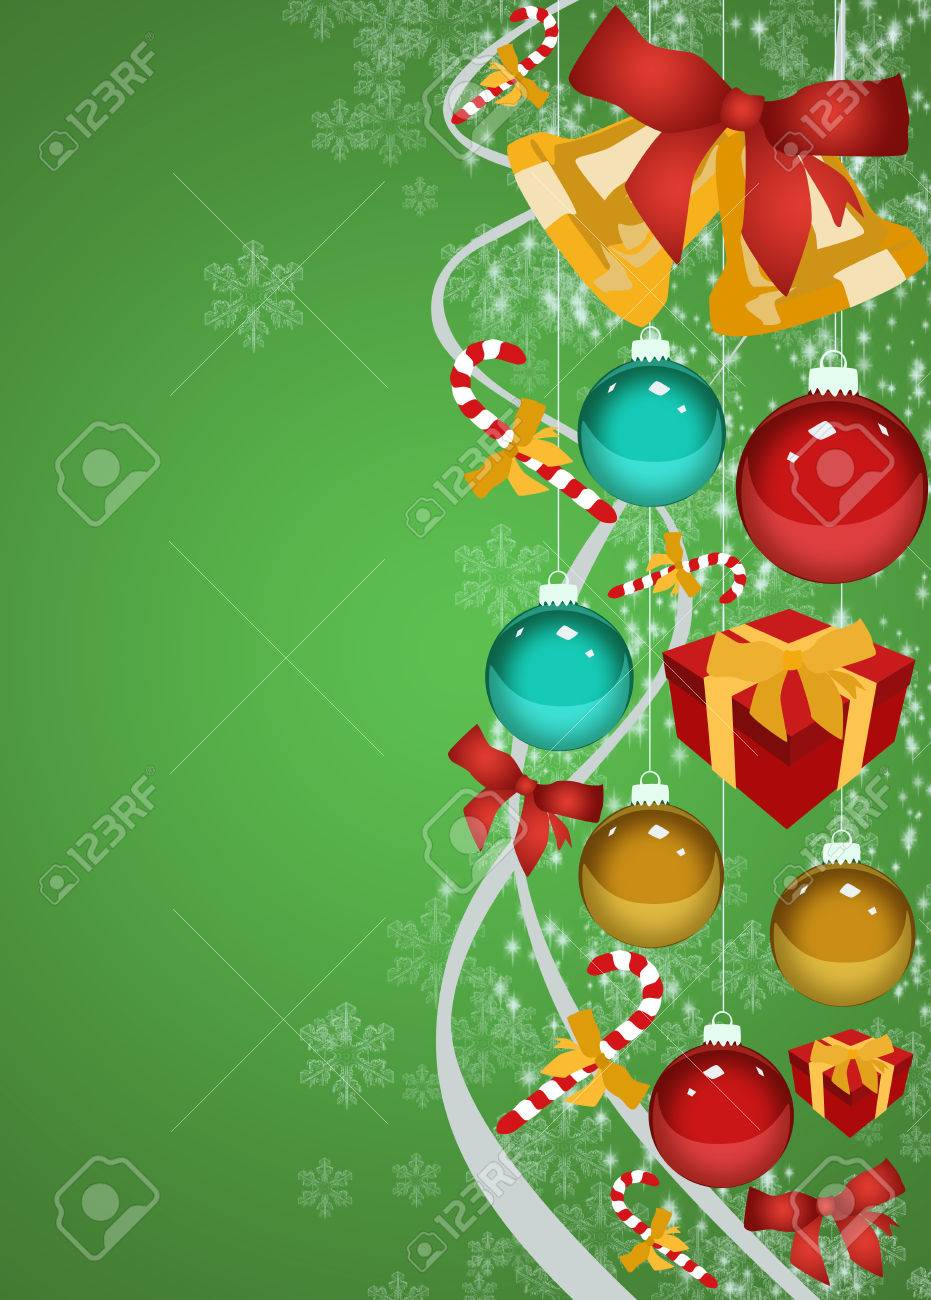 merry christmas decoration poster or flyer background space merry christmas decoration poster or flyer background space stock photo 23419494